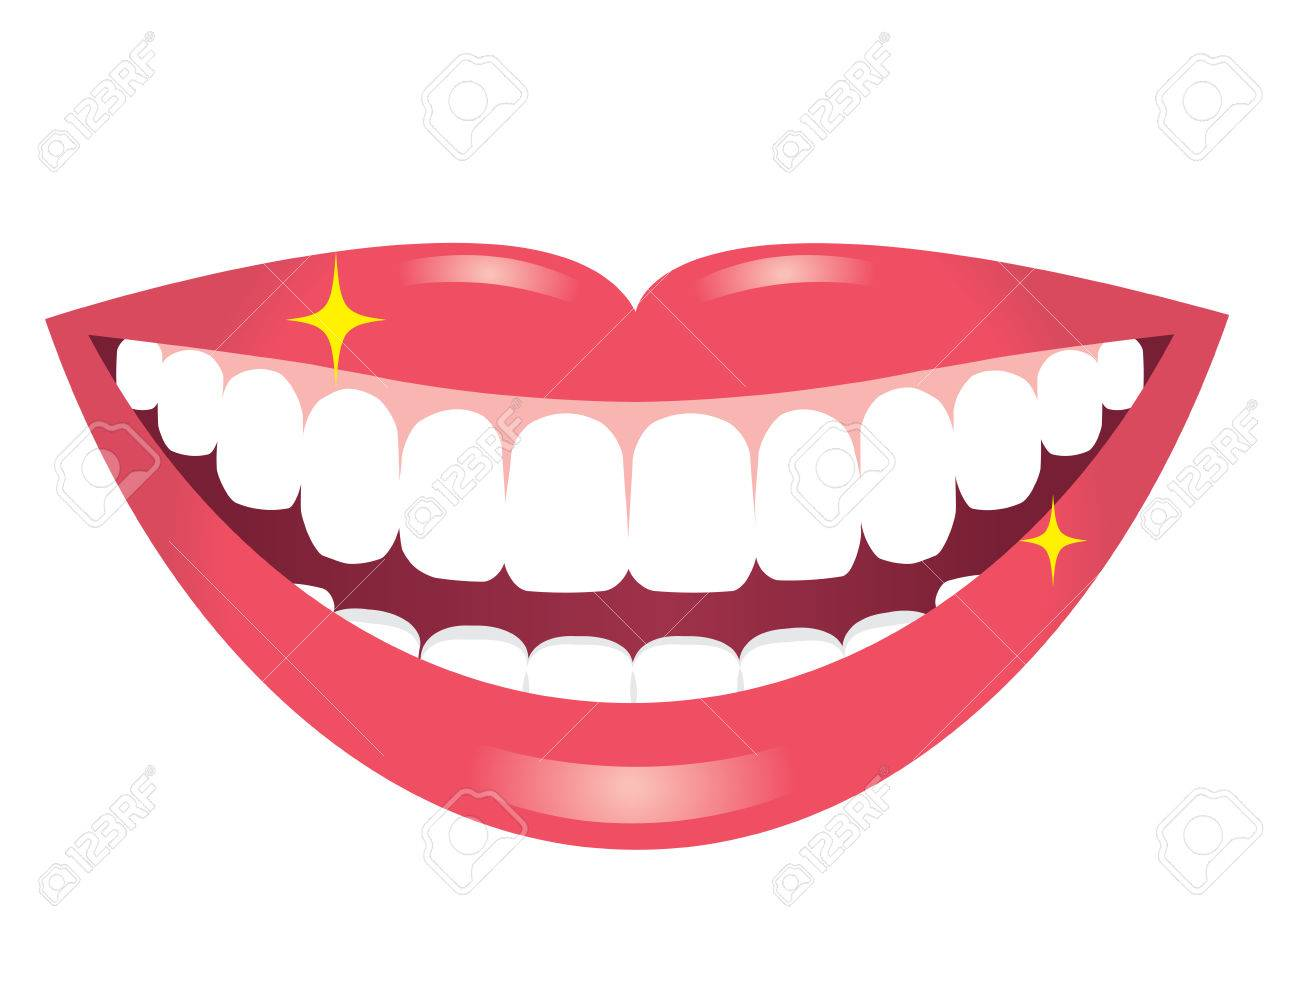 Lips and teeth clipart 1 » Clipart Station.